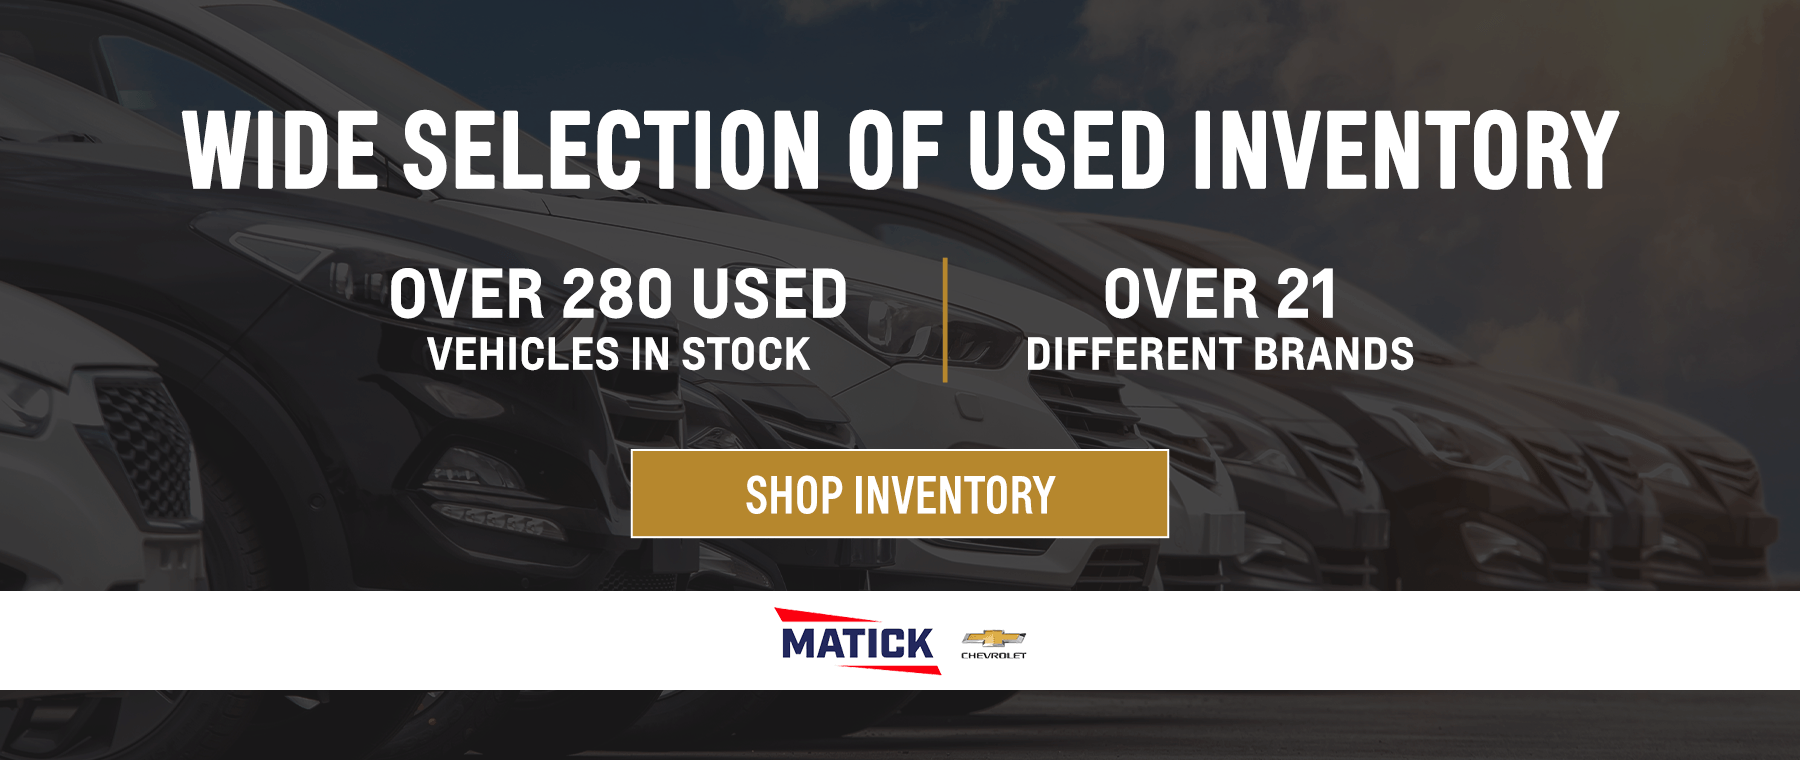 Matick Chevy Used Inventory